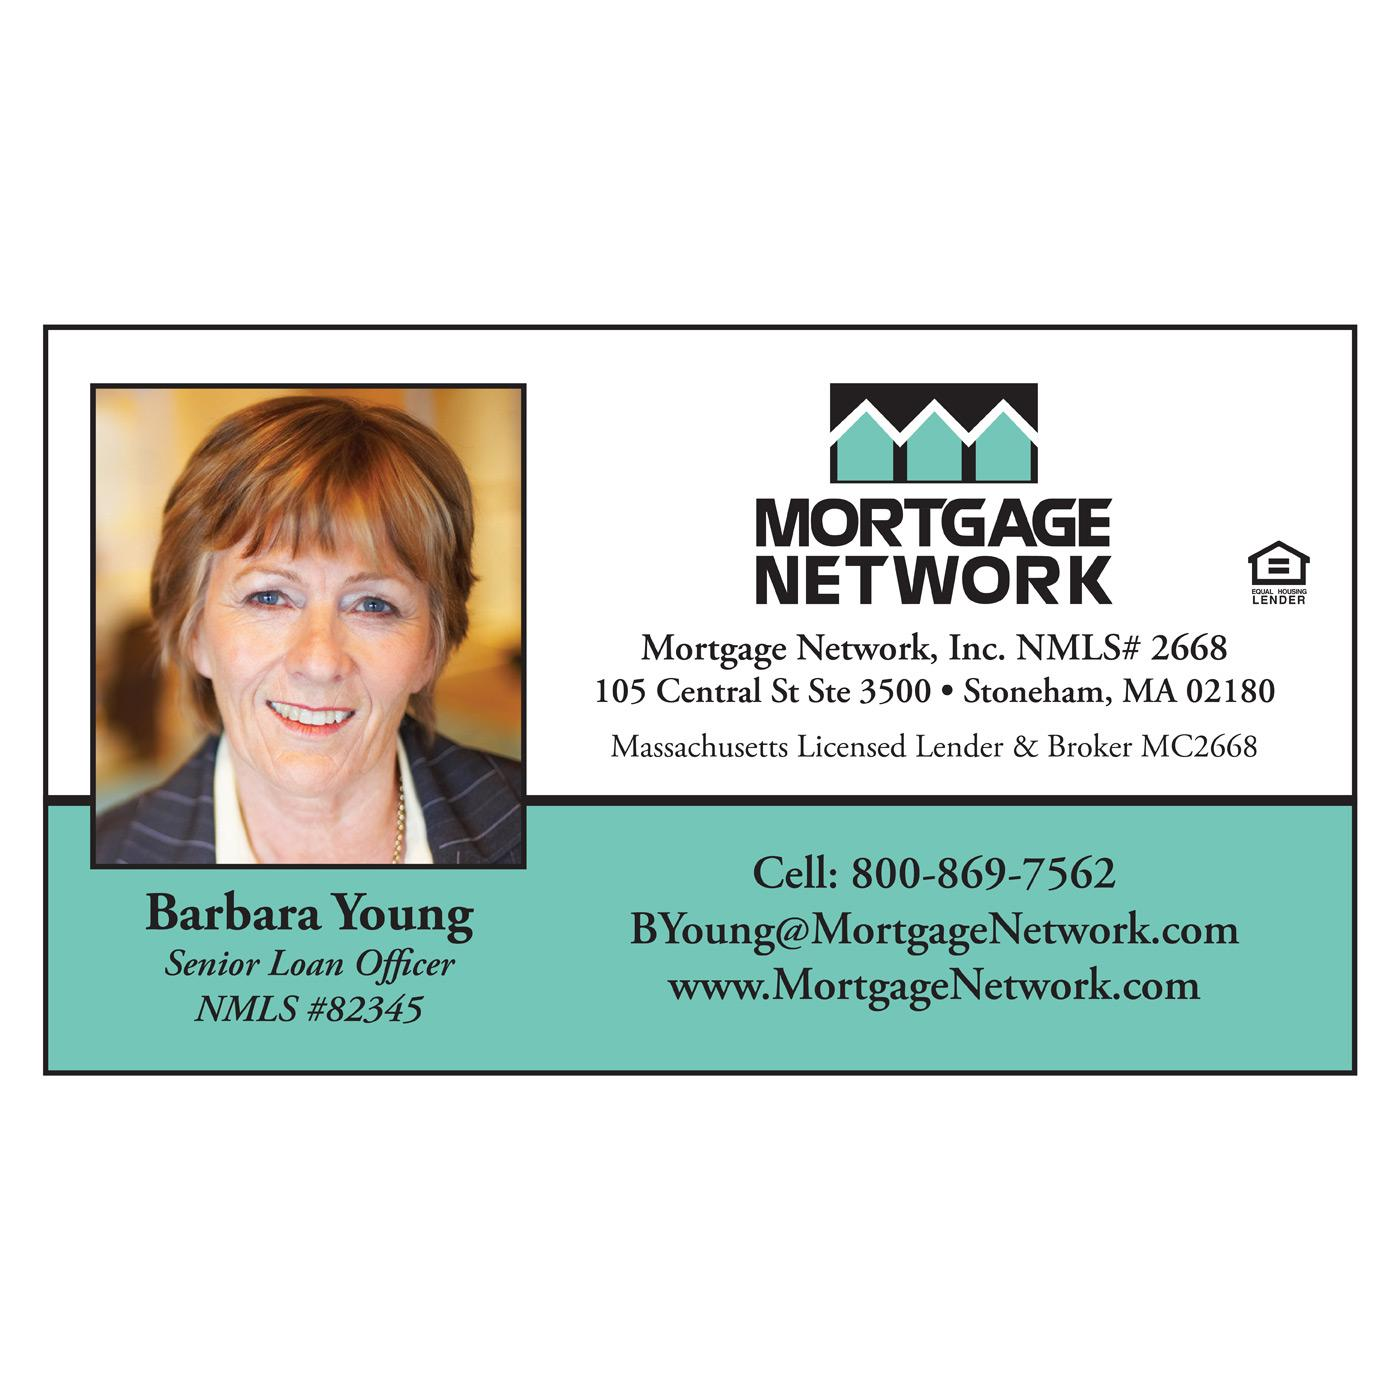 Mortgage Network business card